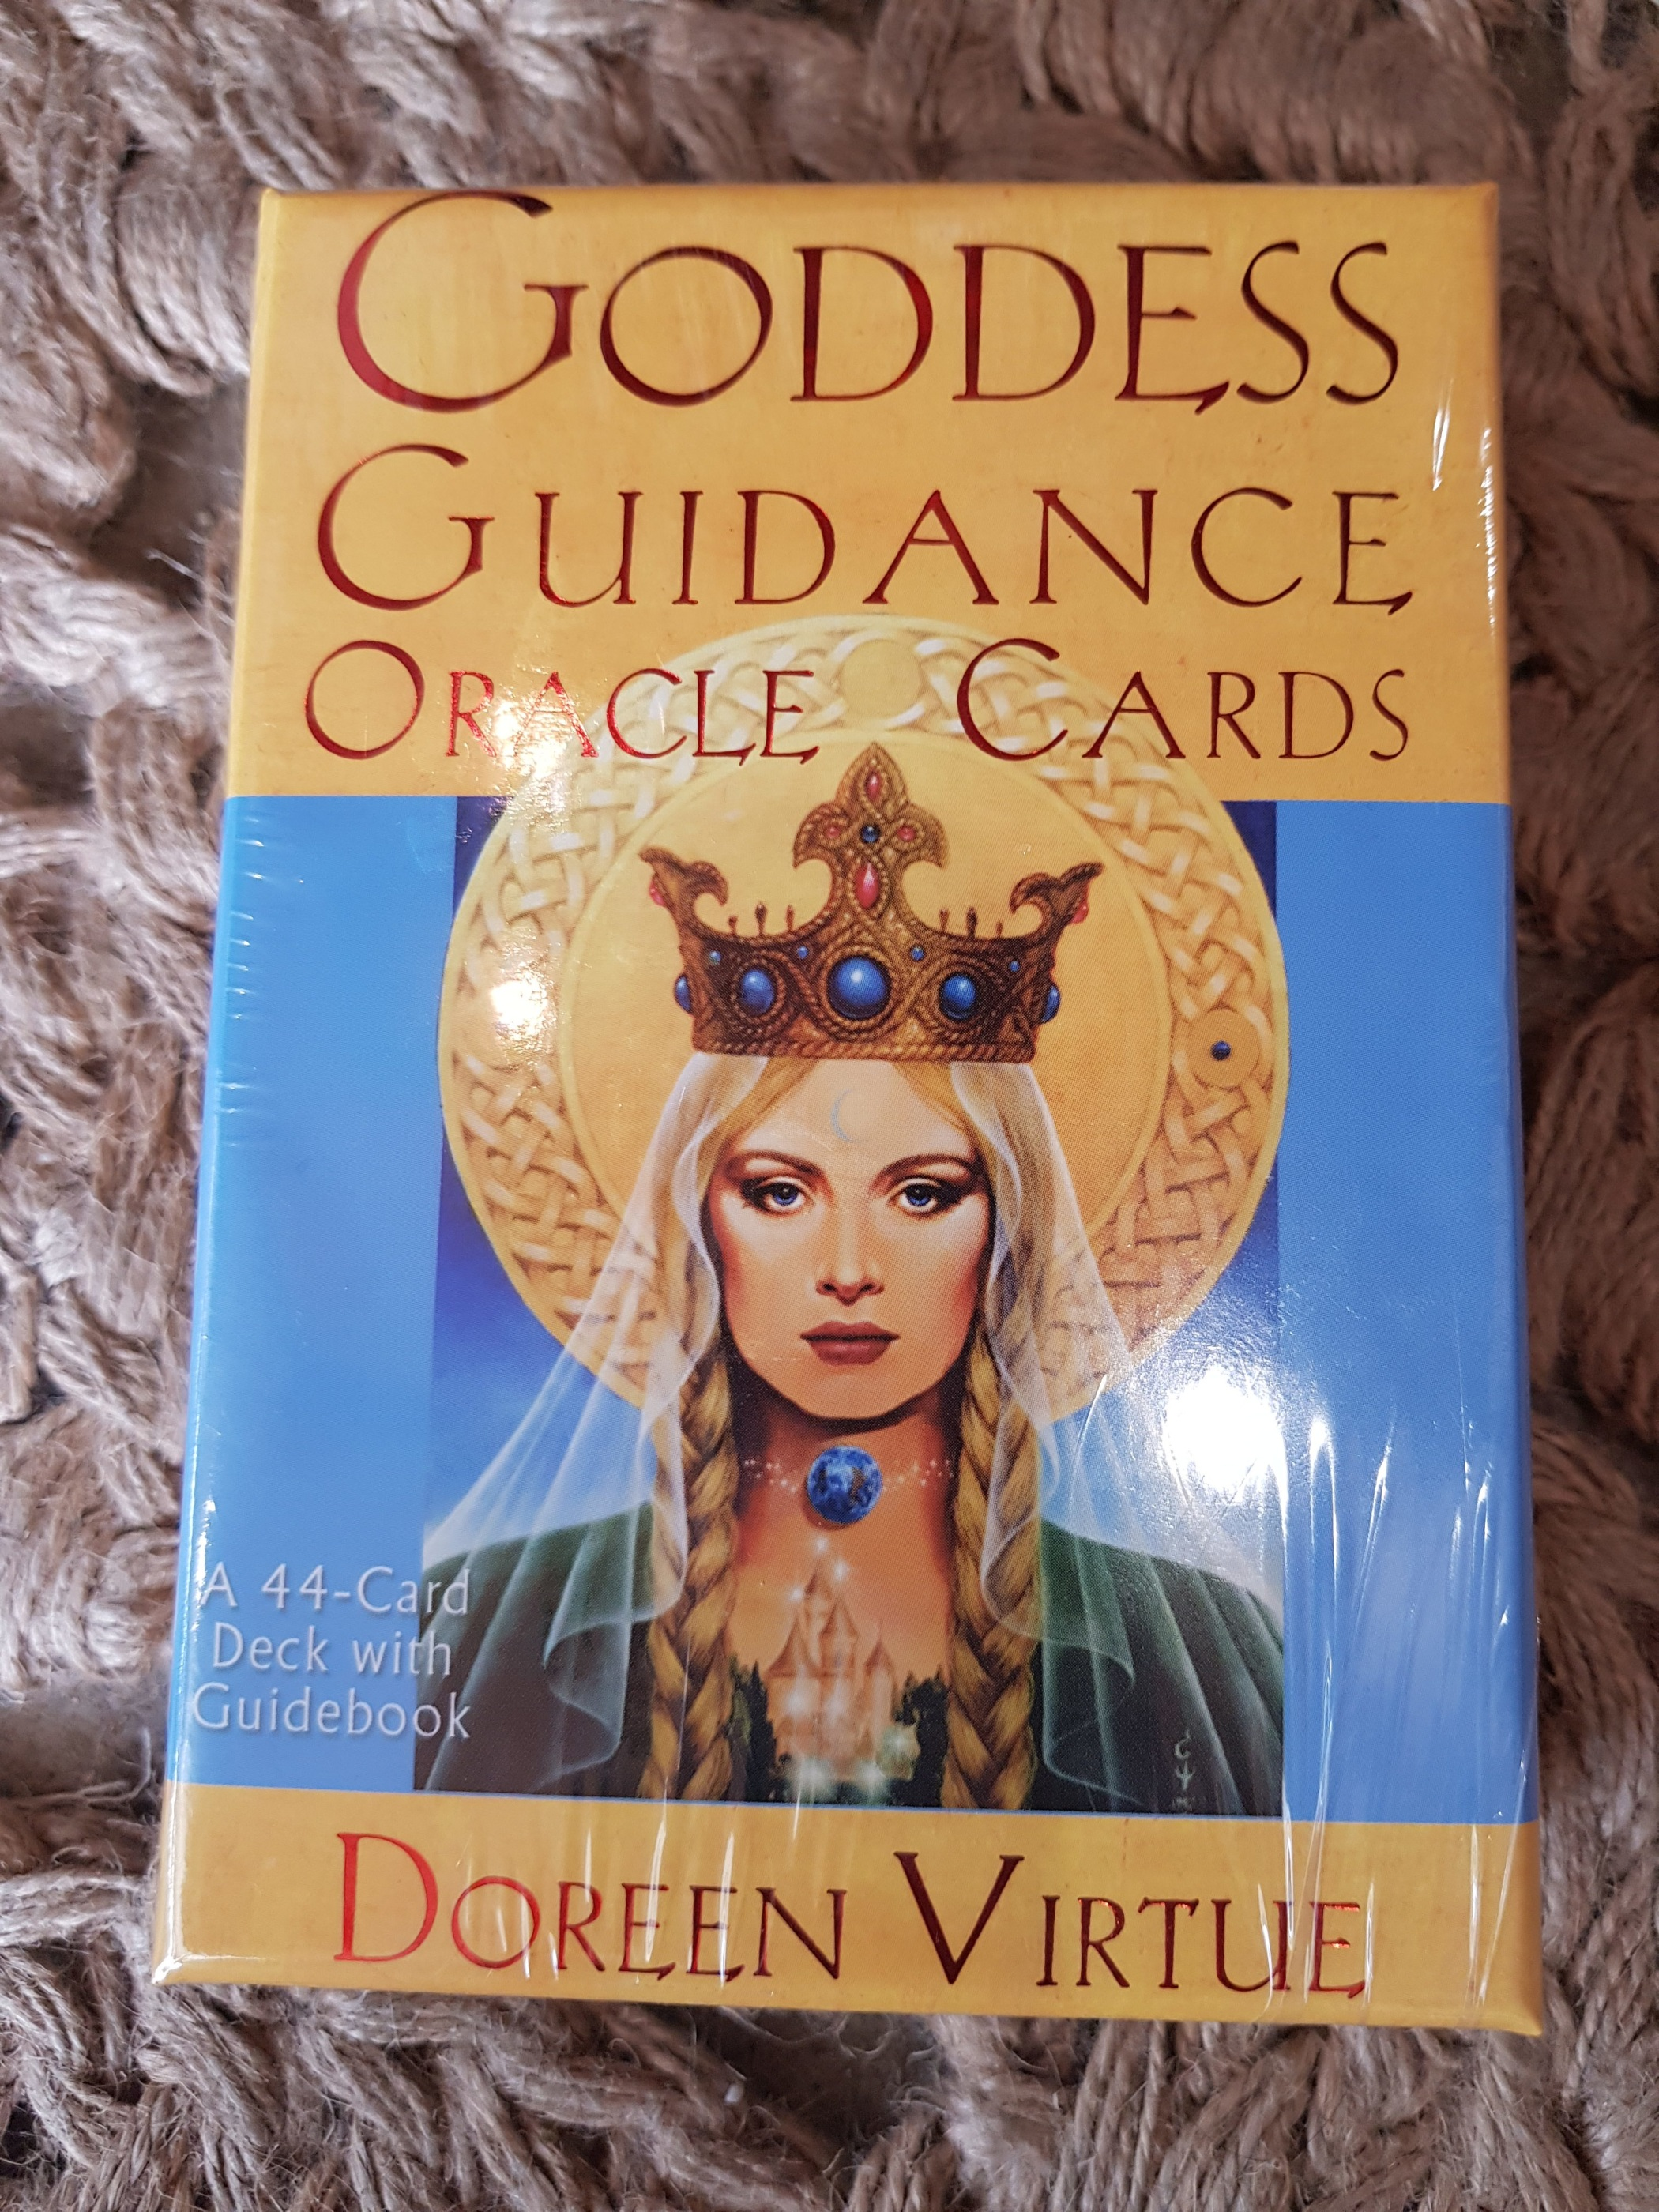 Goddess Guidance_1